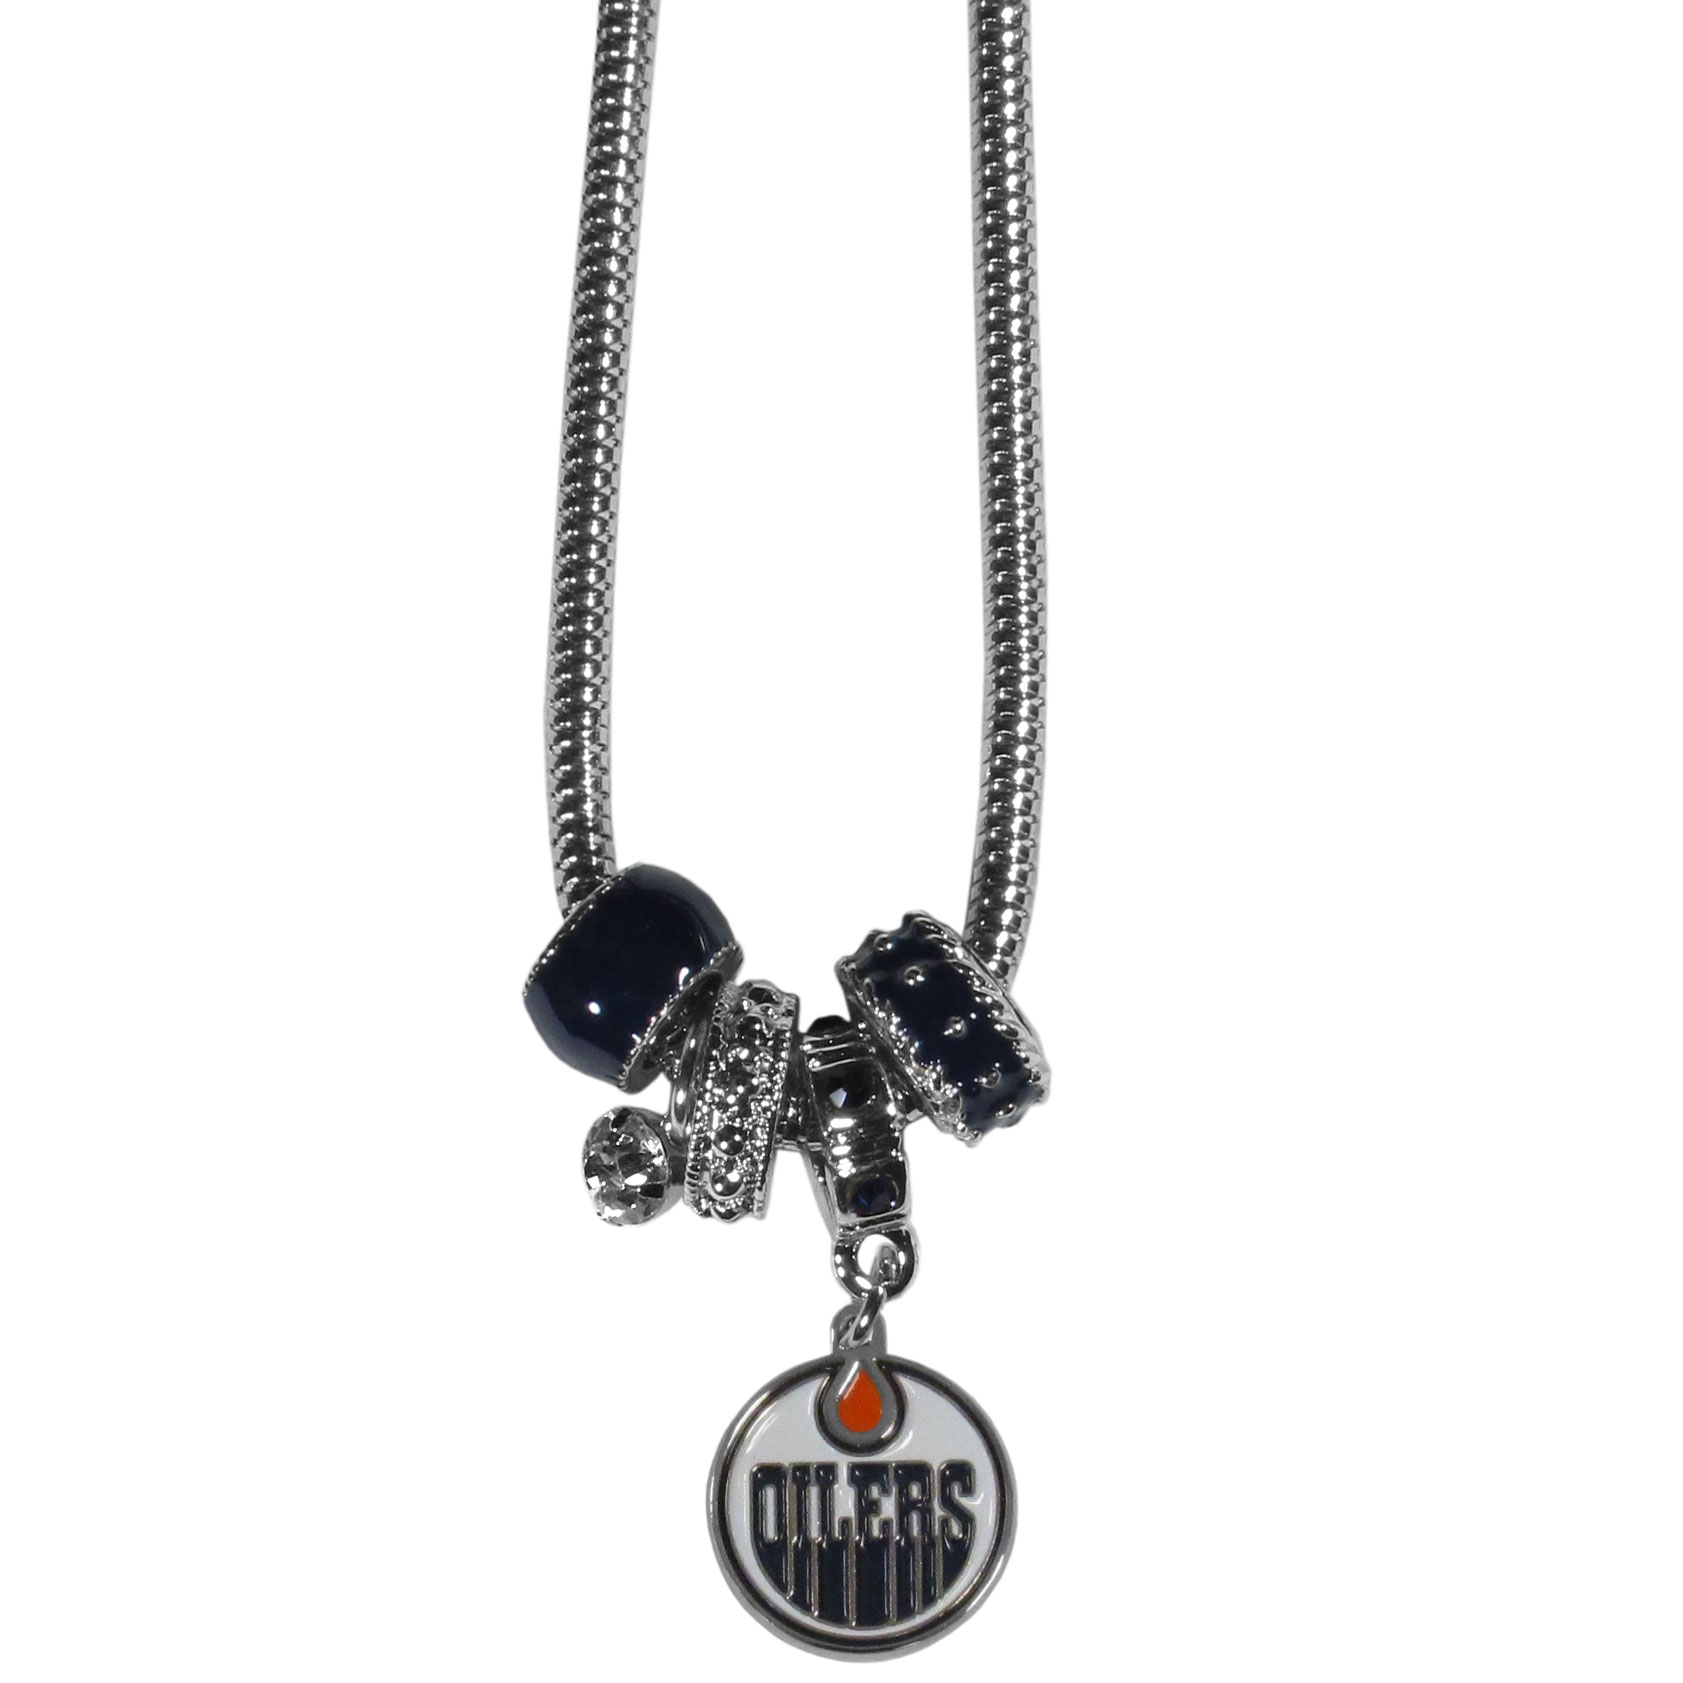 Edmonton Oilers Euro Bead Necklace - We have combined the wildly popular Euro style beads with your favorite team to create our Edmonton Oilers bead necklace. The 18 inch snake chain features 4 Euro beads with enameled Edmonton Oilers colors and rhinestone accents with a high polish, nickel free charm and rhinestone charm. Perfect way to show off your Edmonton Oilers pride.